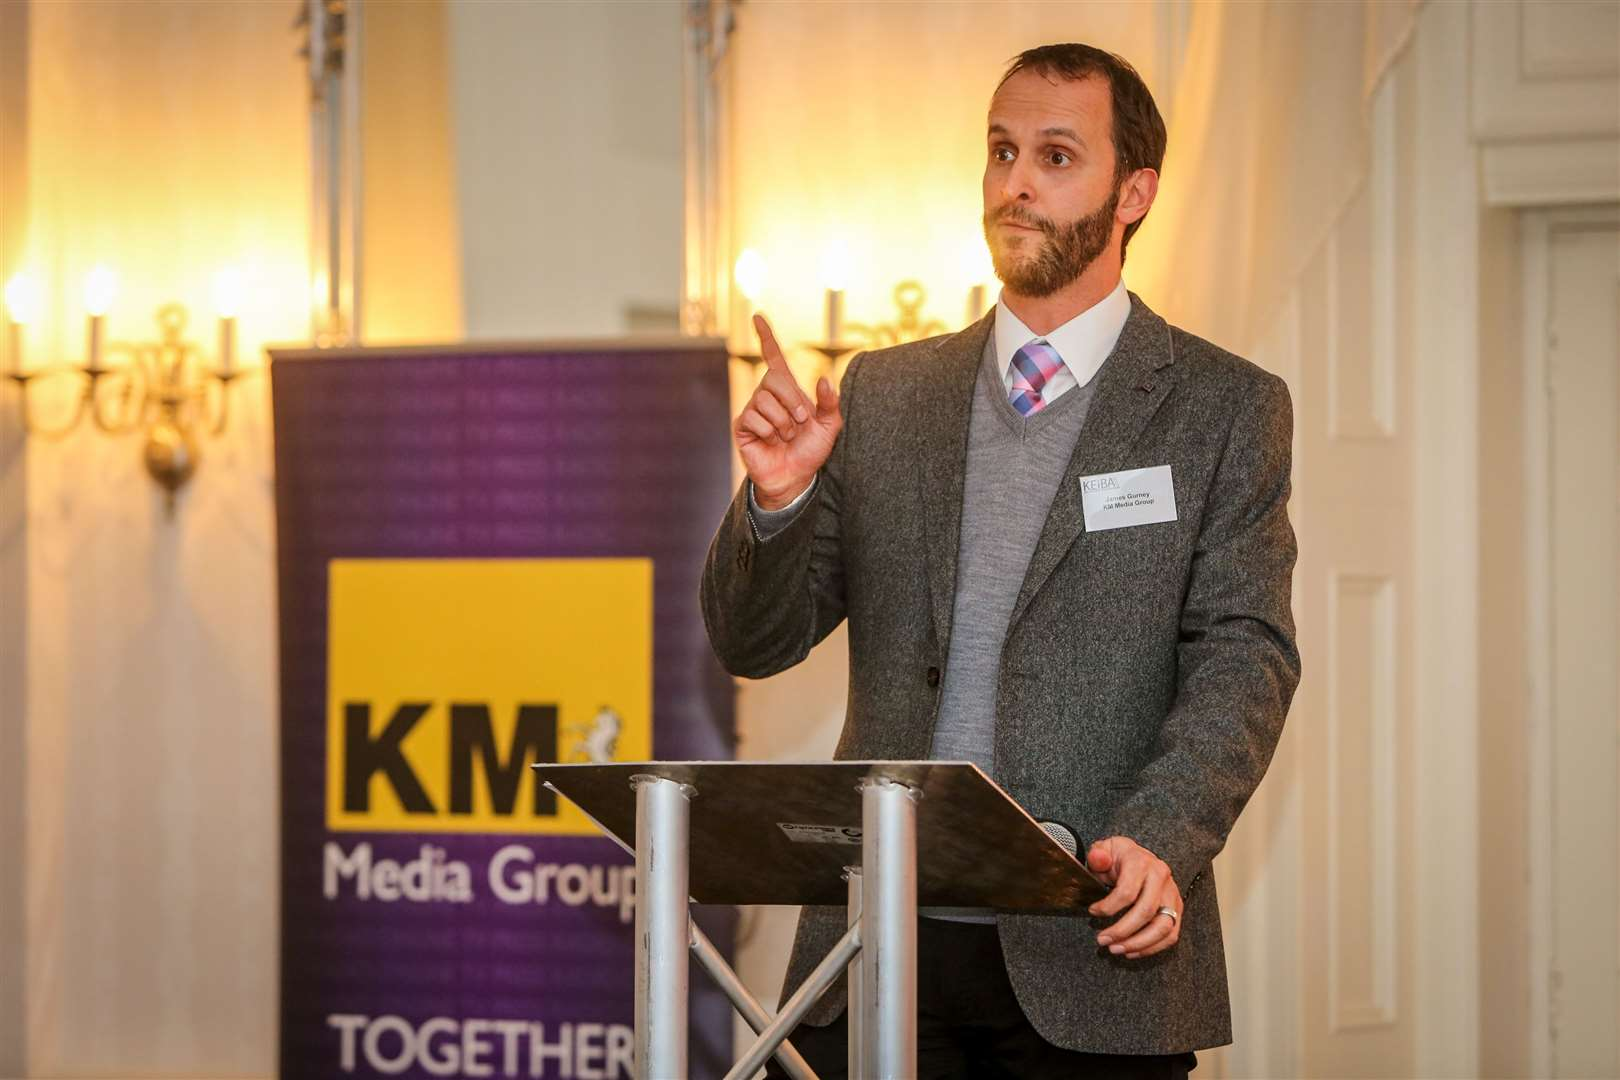 KM Media Group MD James Gurney has confirmed KEiBA 2020 has been cancelled